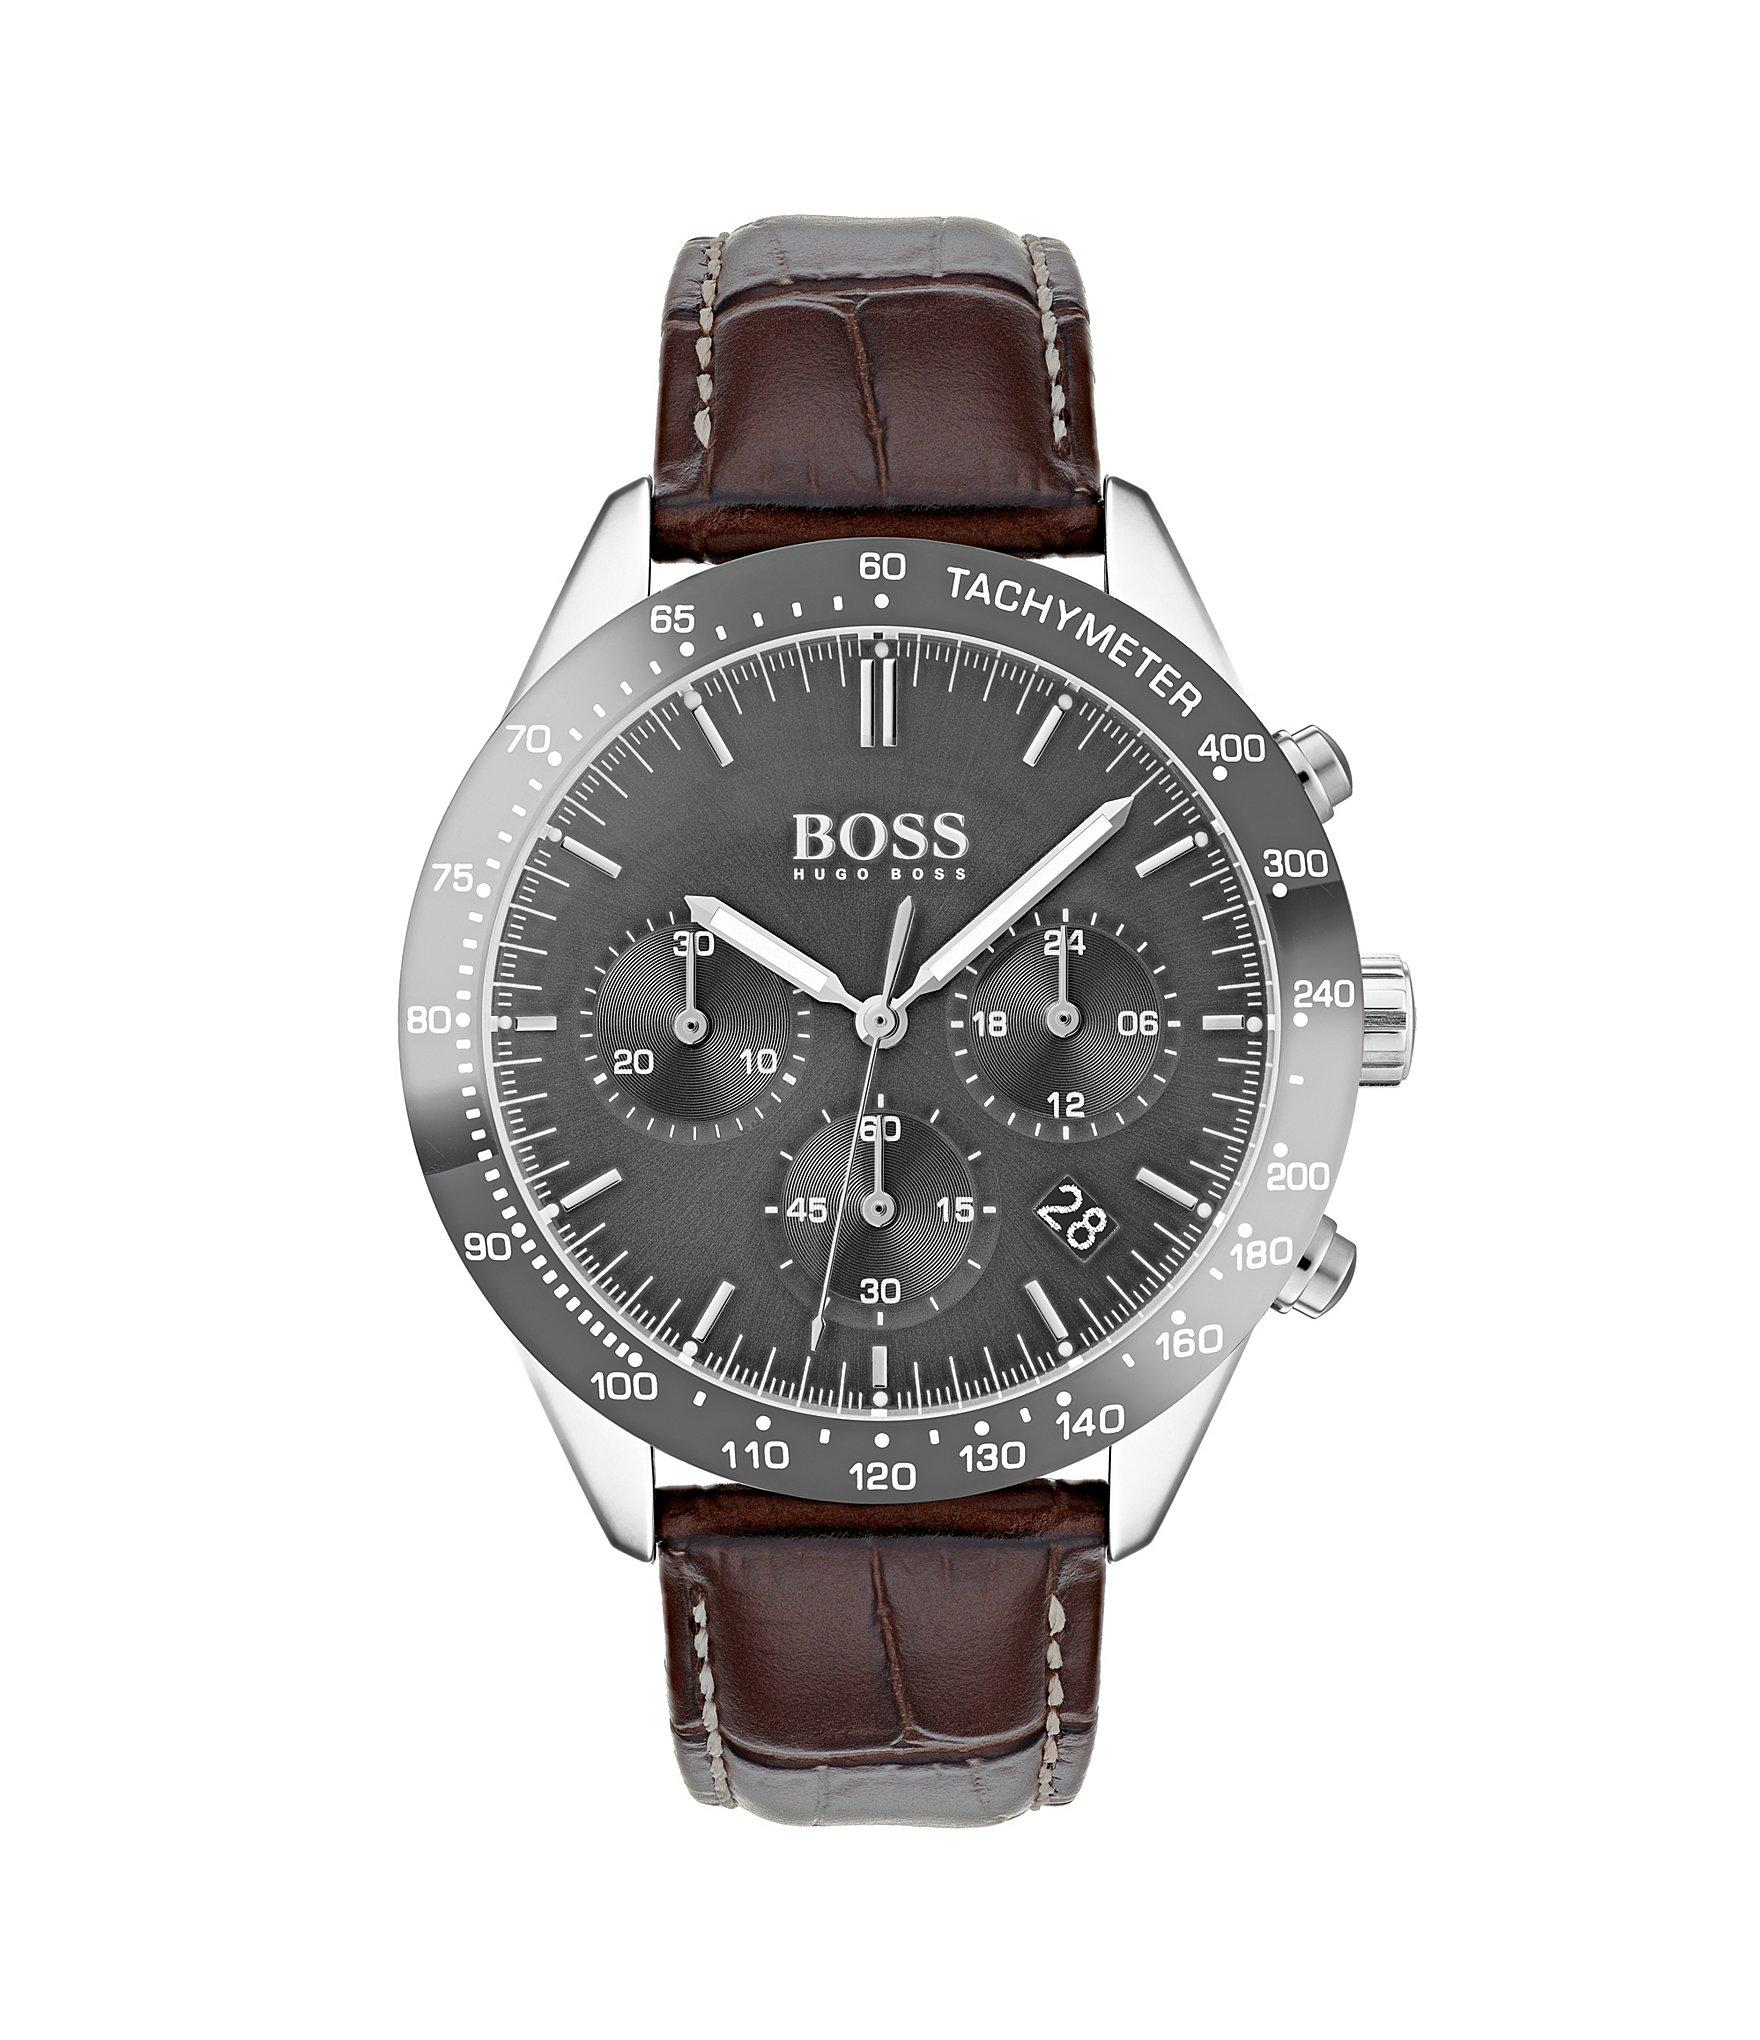 af3d1de27 BOSS - Black Boss The Talent Collection Brown Leather Watch for Men - Lyst.  View fullscreen